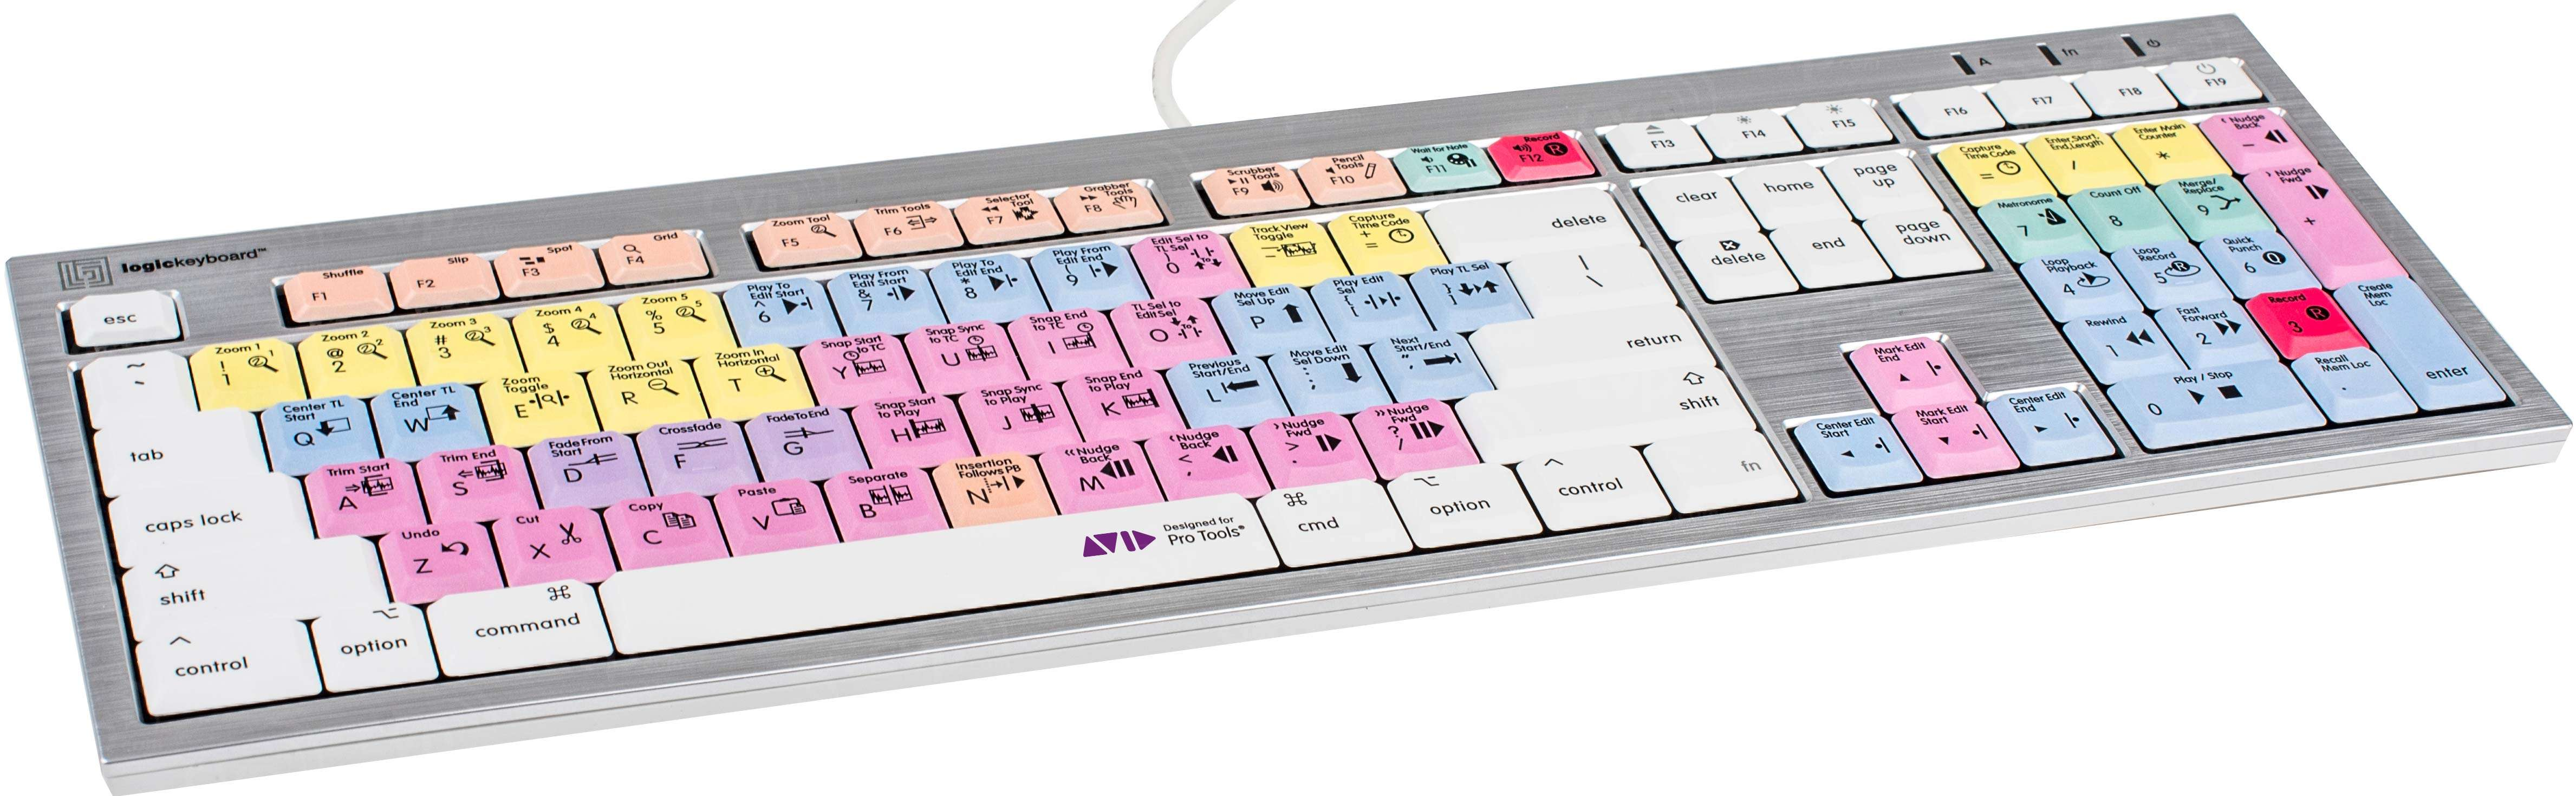 Pro Tools Mac Alba Keyboard